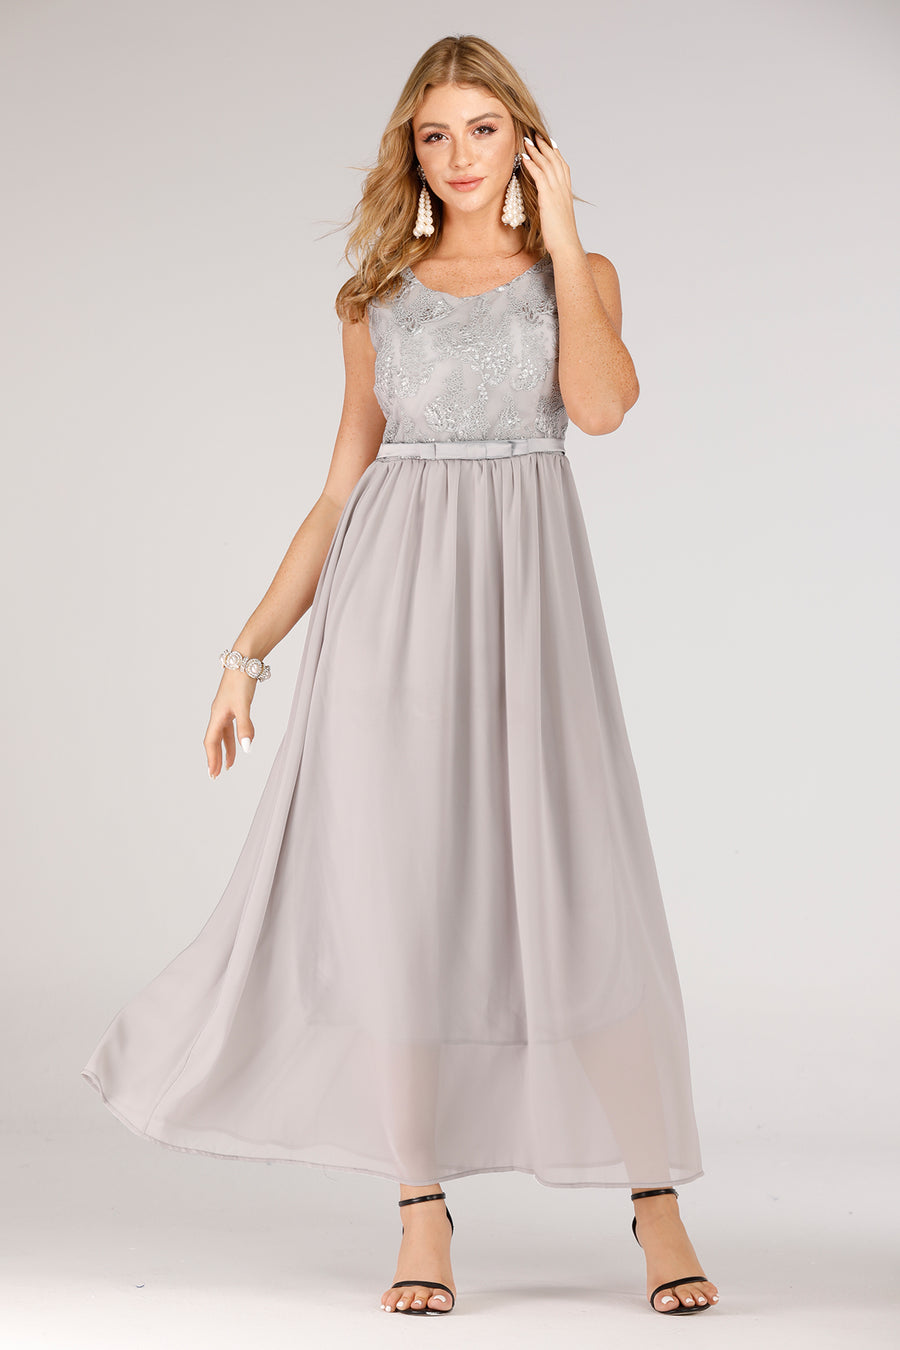 Grey Evening Dress With Lace Top